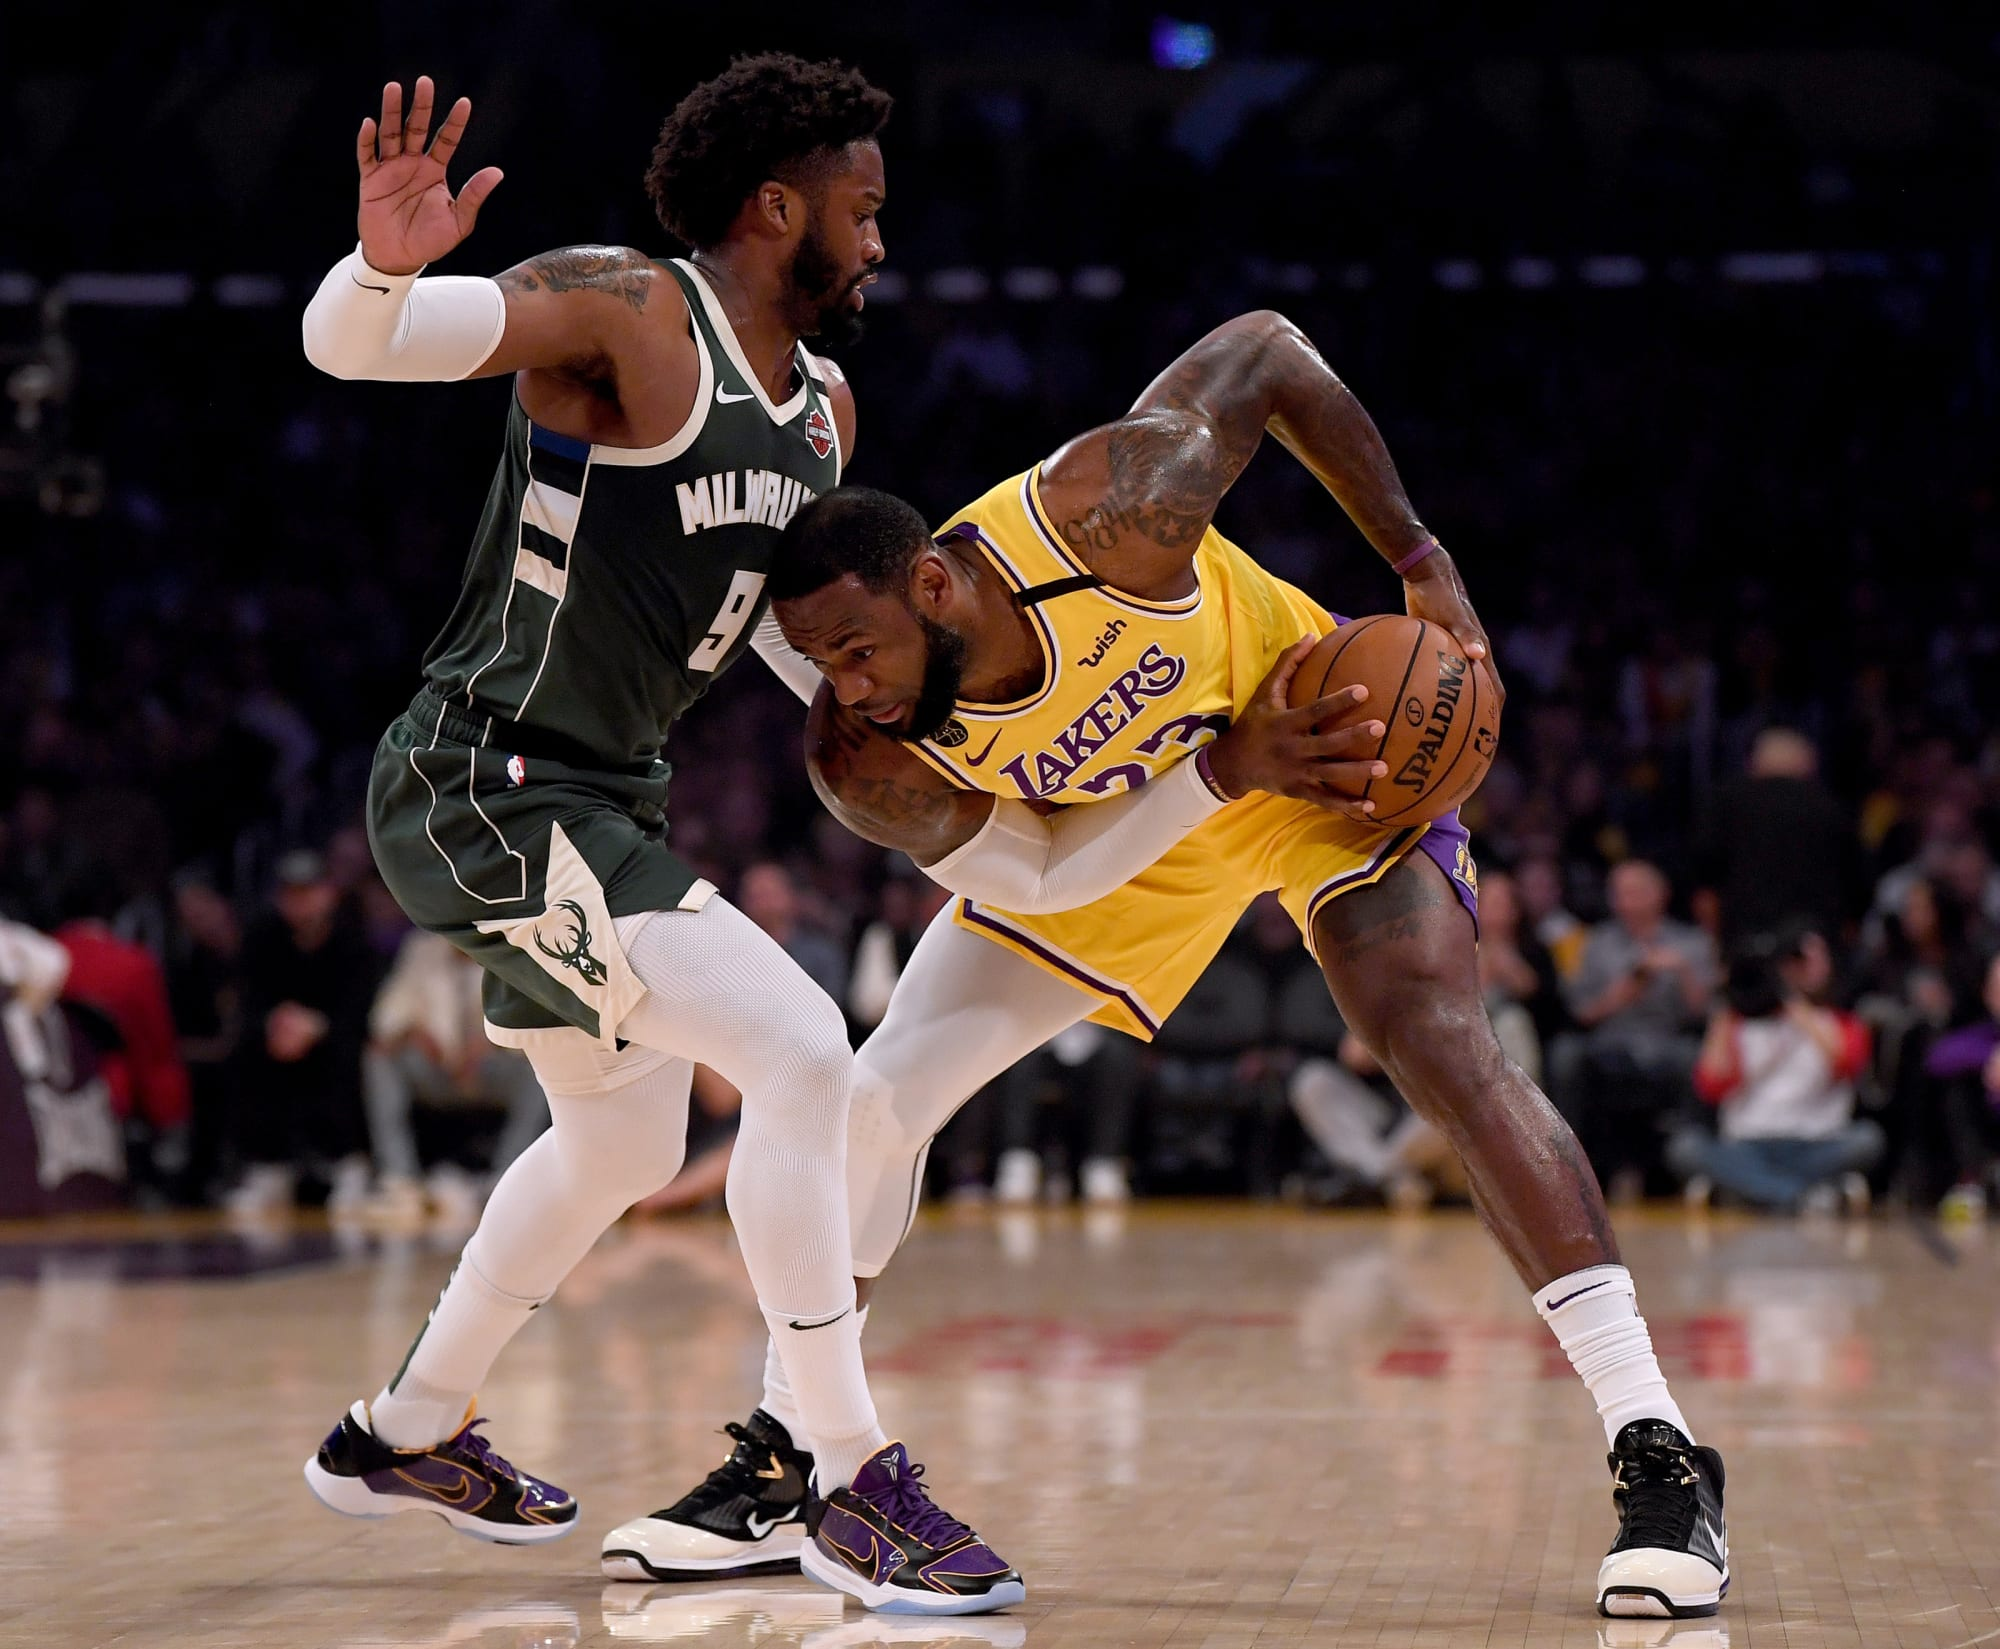 Lakers Rumors: Wesley Matthews signed to deal... What move is next?